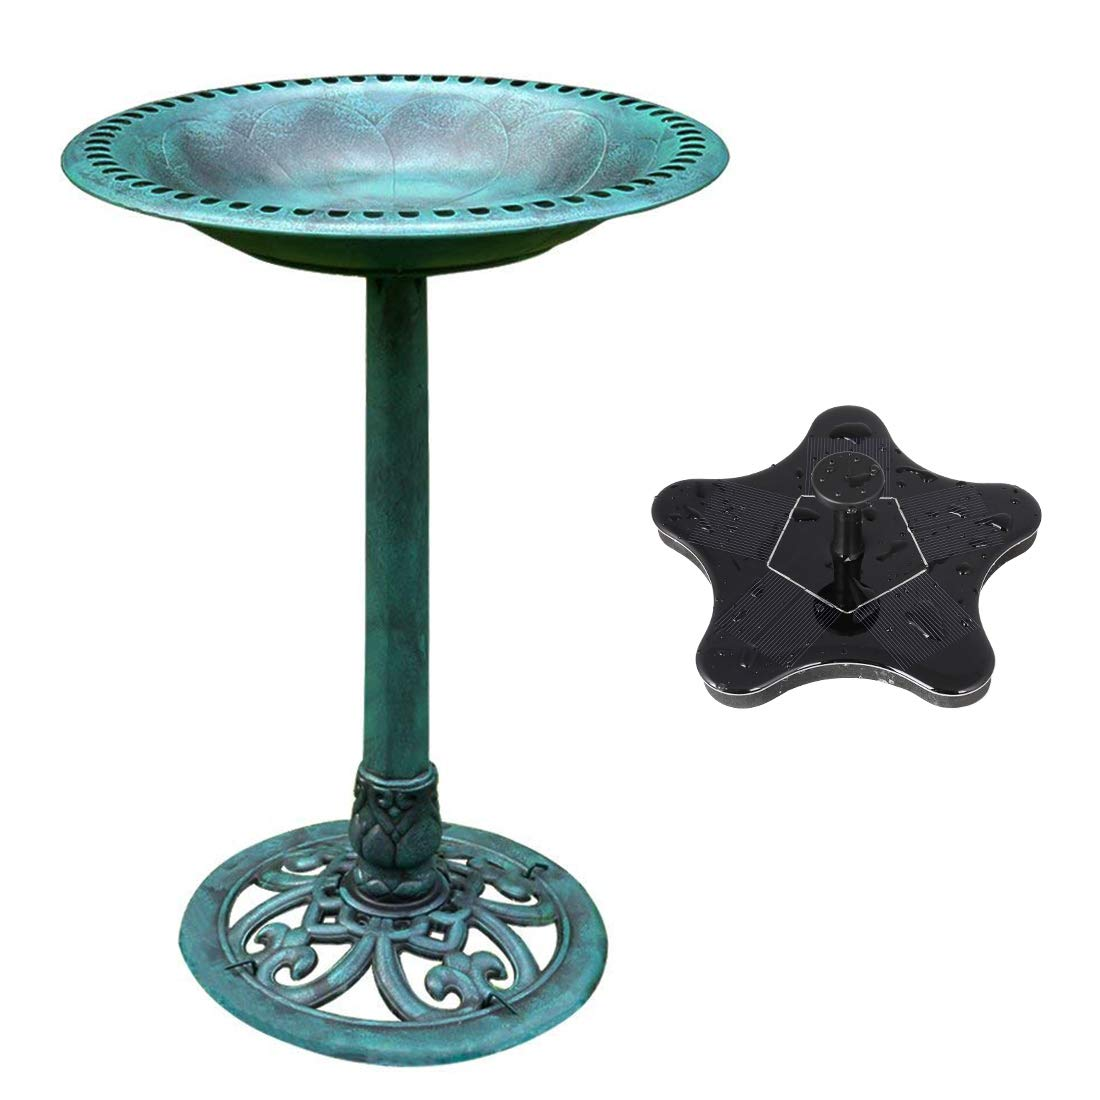 VIVOHOME Polyresin Antique Outdoor Green Garden Bird Bath and Solar Powered Starfish Pond Fountain Combo Set